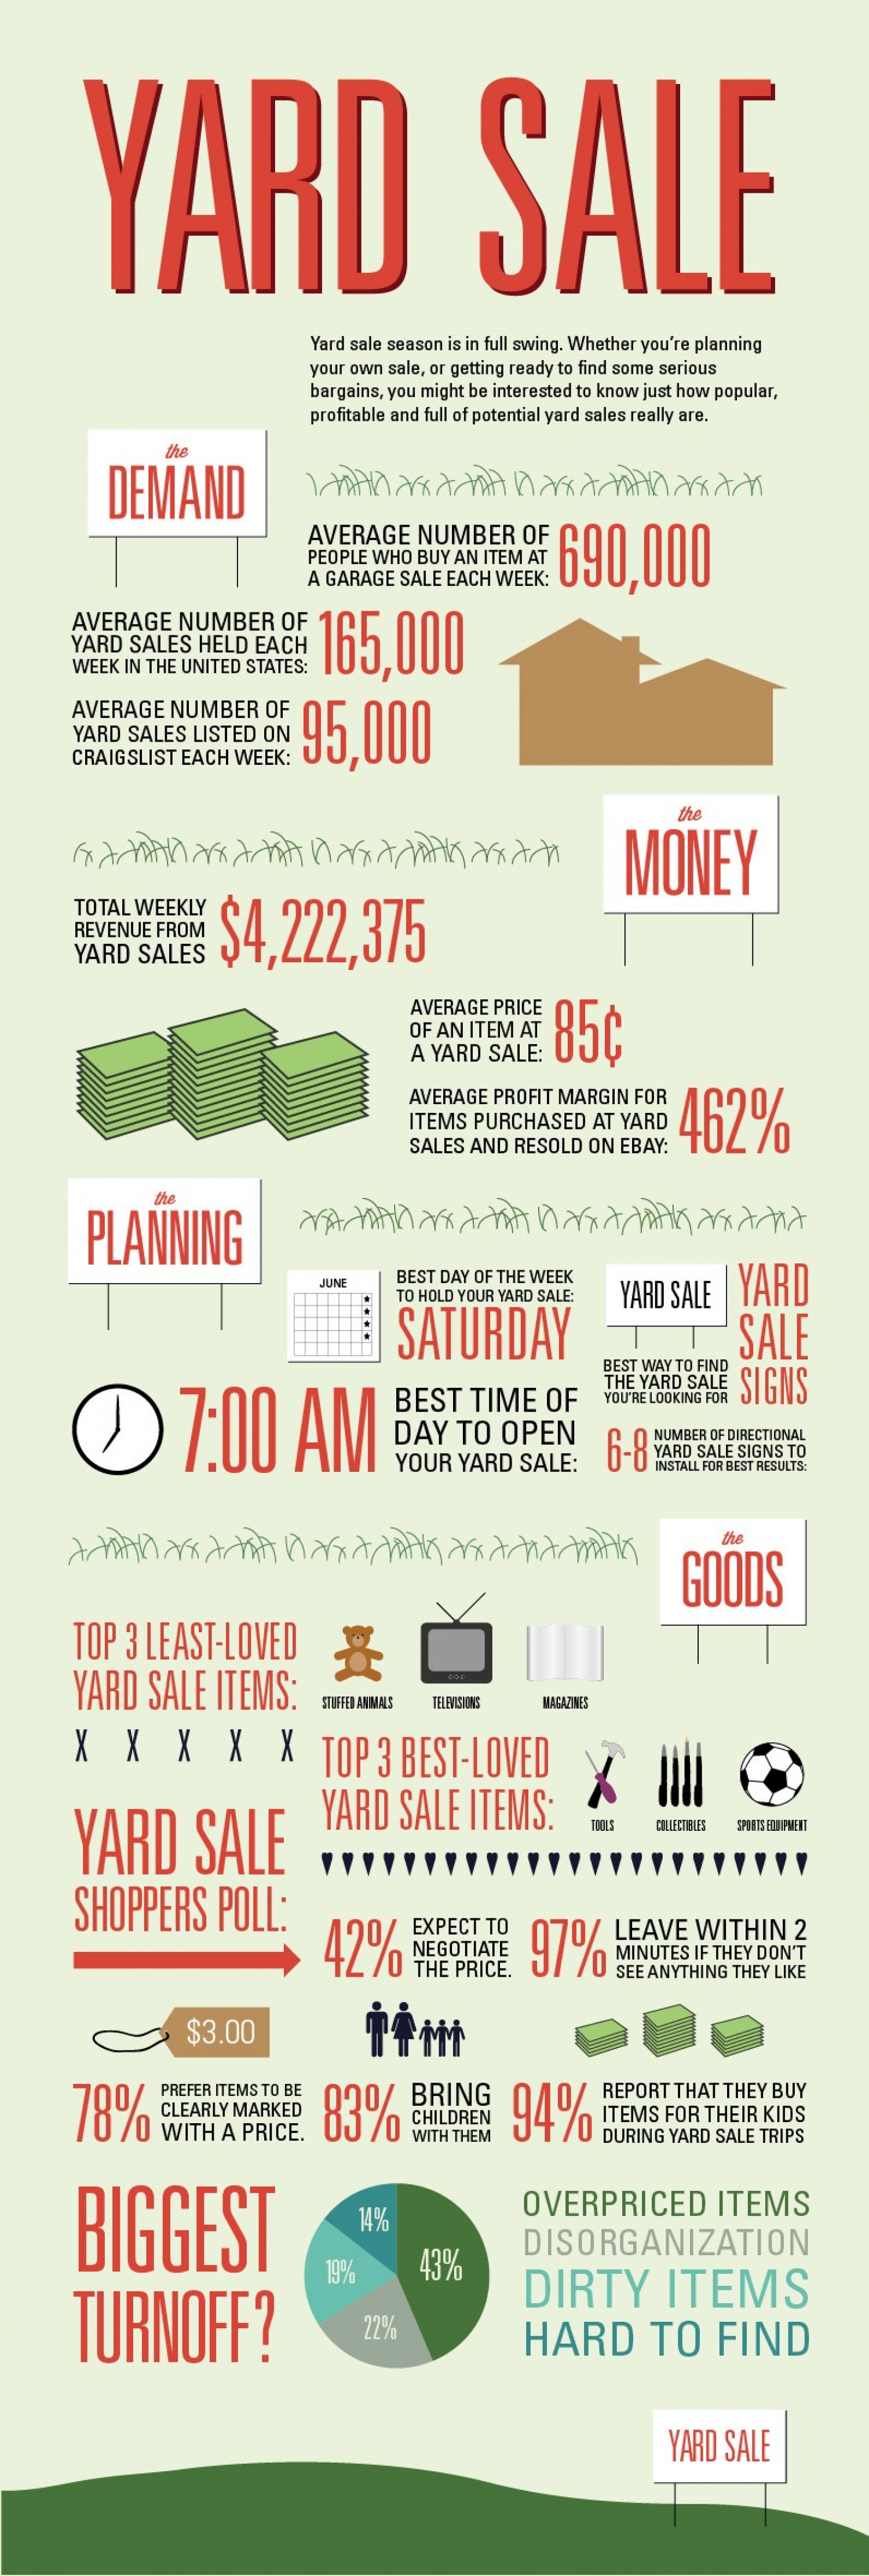 Signs.com Yard Sale Sign  Infographic